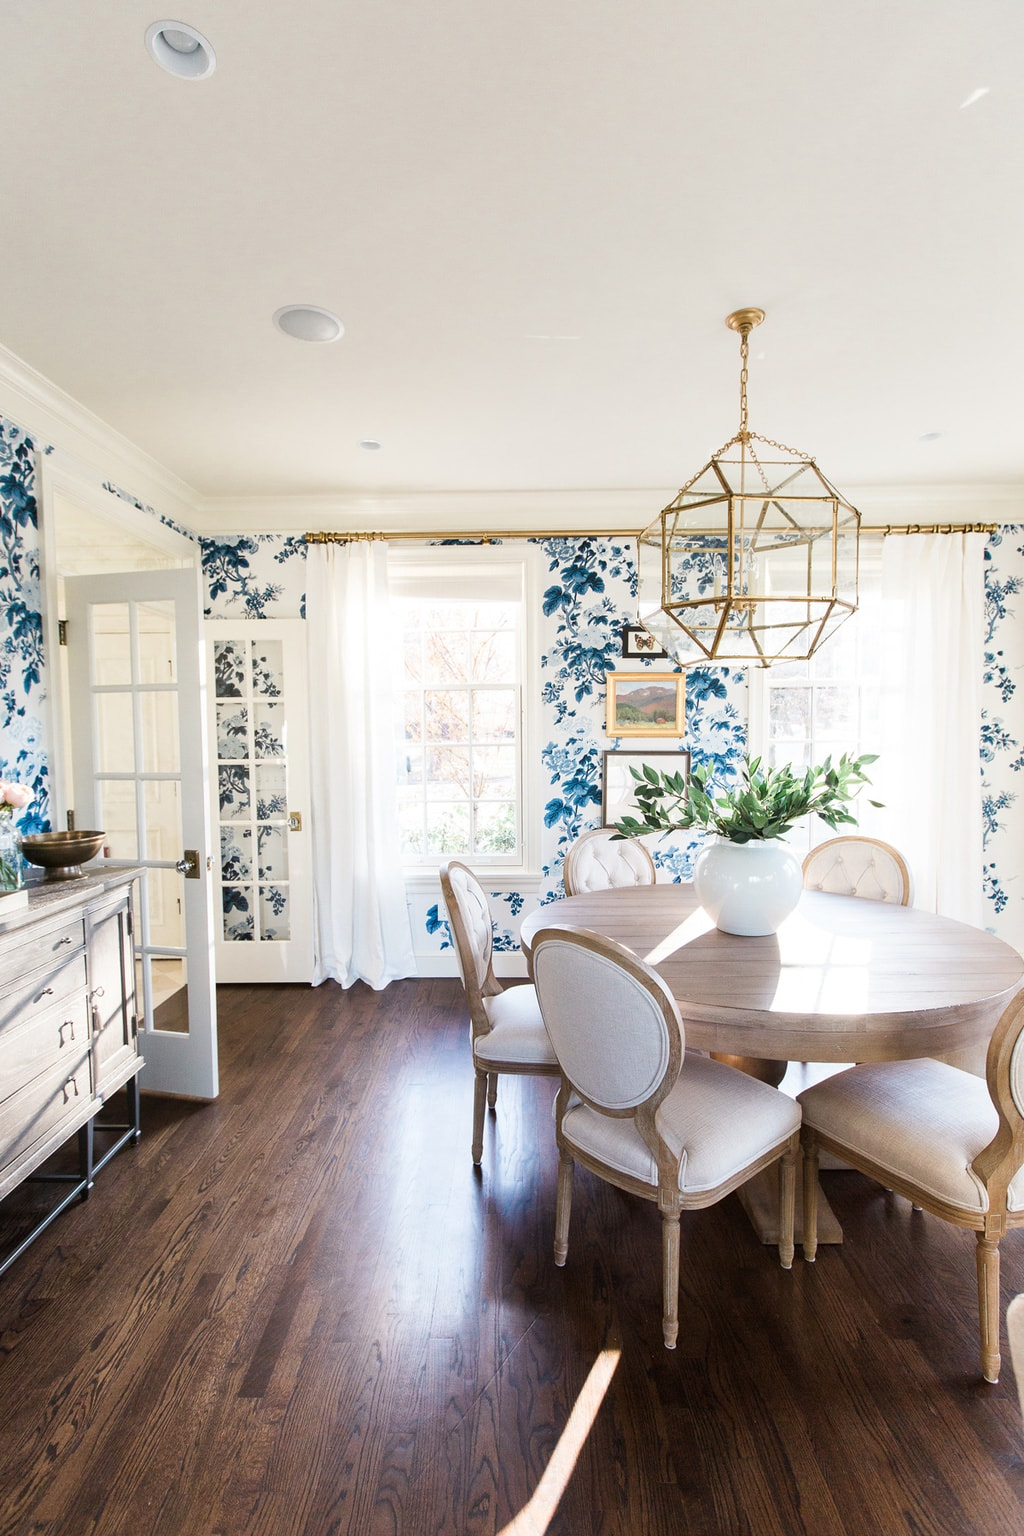 Where to Find the Perfect Farmhouse Style Wallpaper ... on Farmhouse Dining Room Curtains  id=99428